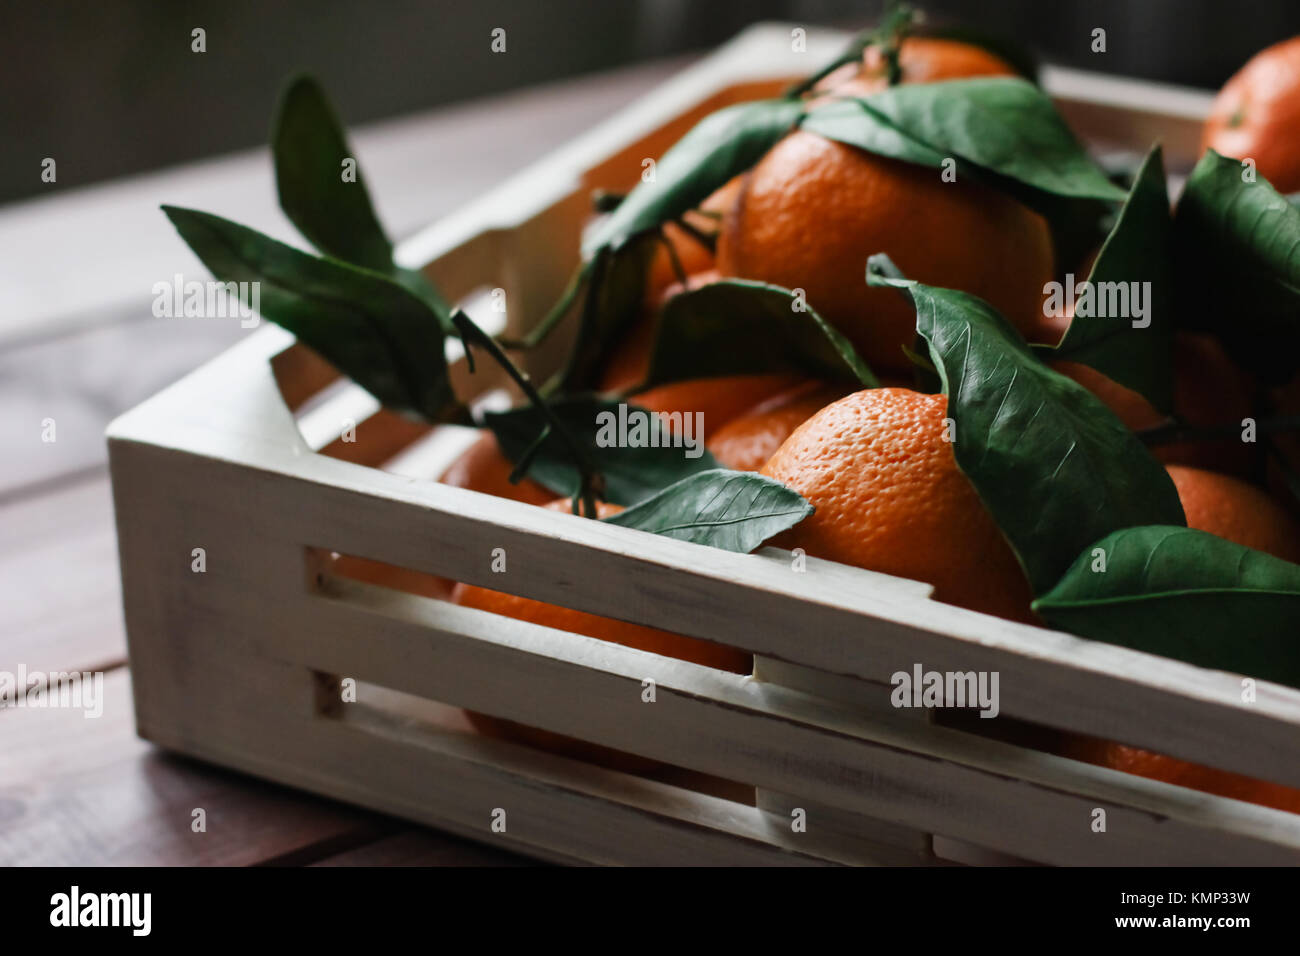 Wooden box of fresh tangerines with leaves on table - Stock Image